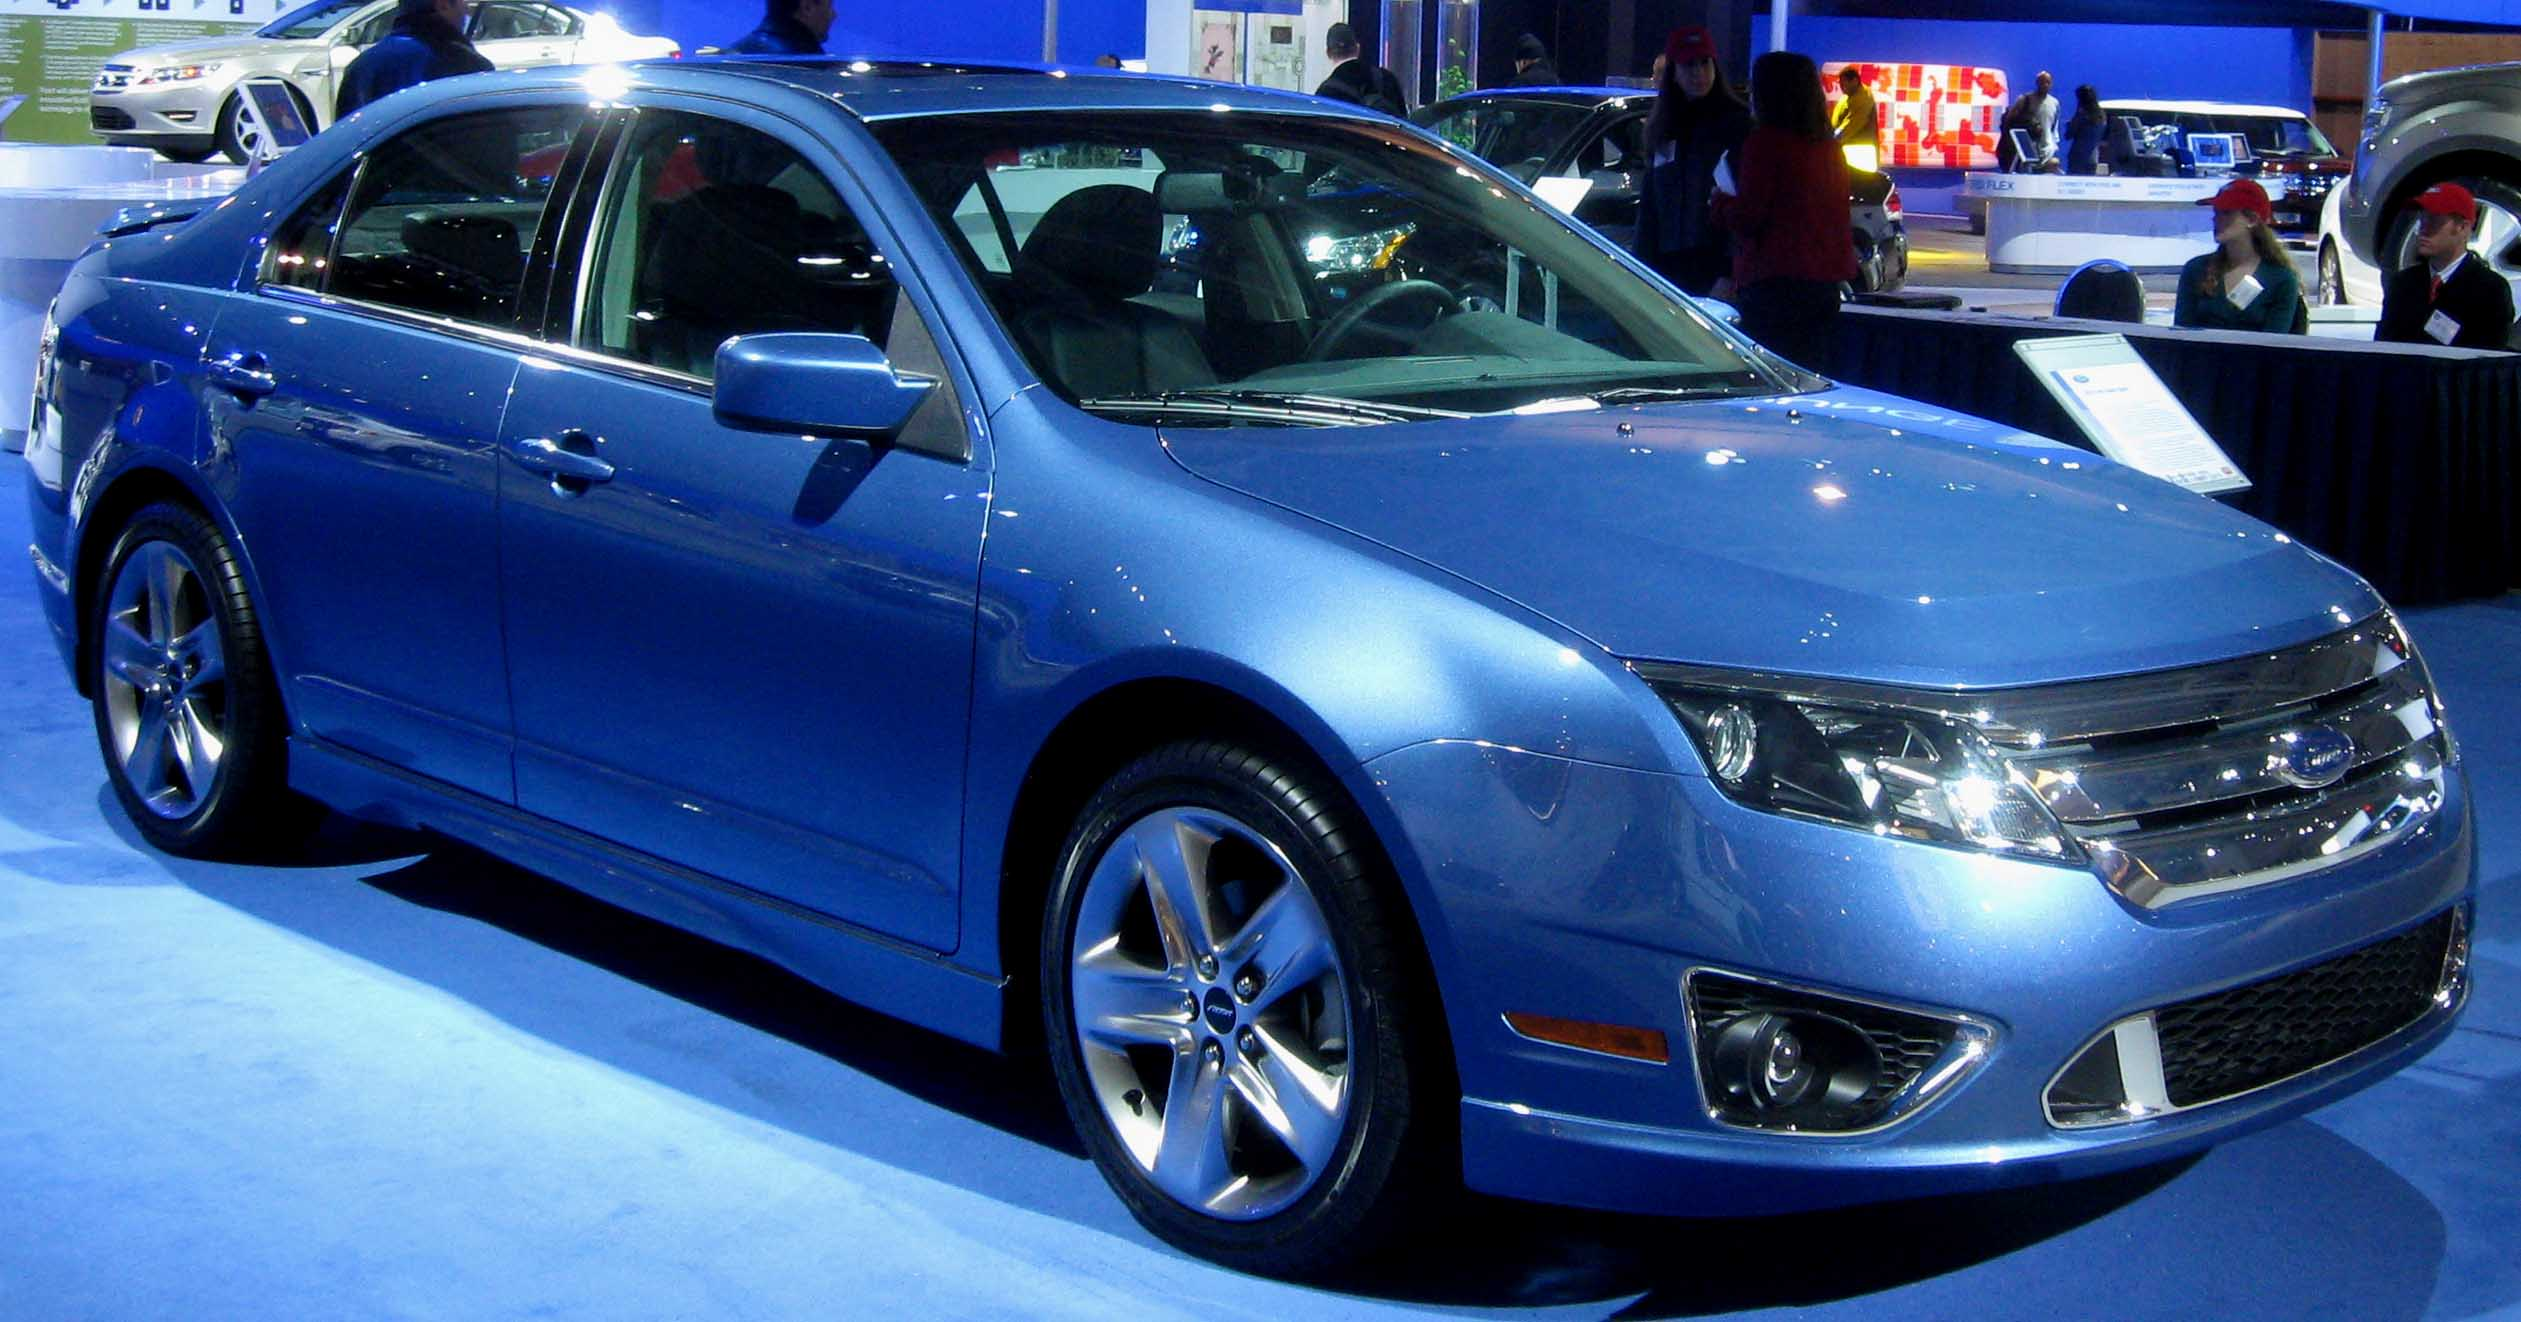 file 2010 ford fusion sport wikimedia commons. Black Bedroom Furniture Sets. Home Design Ideas